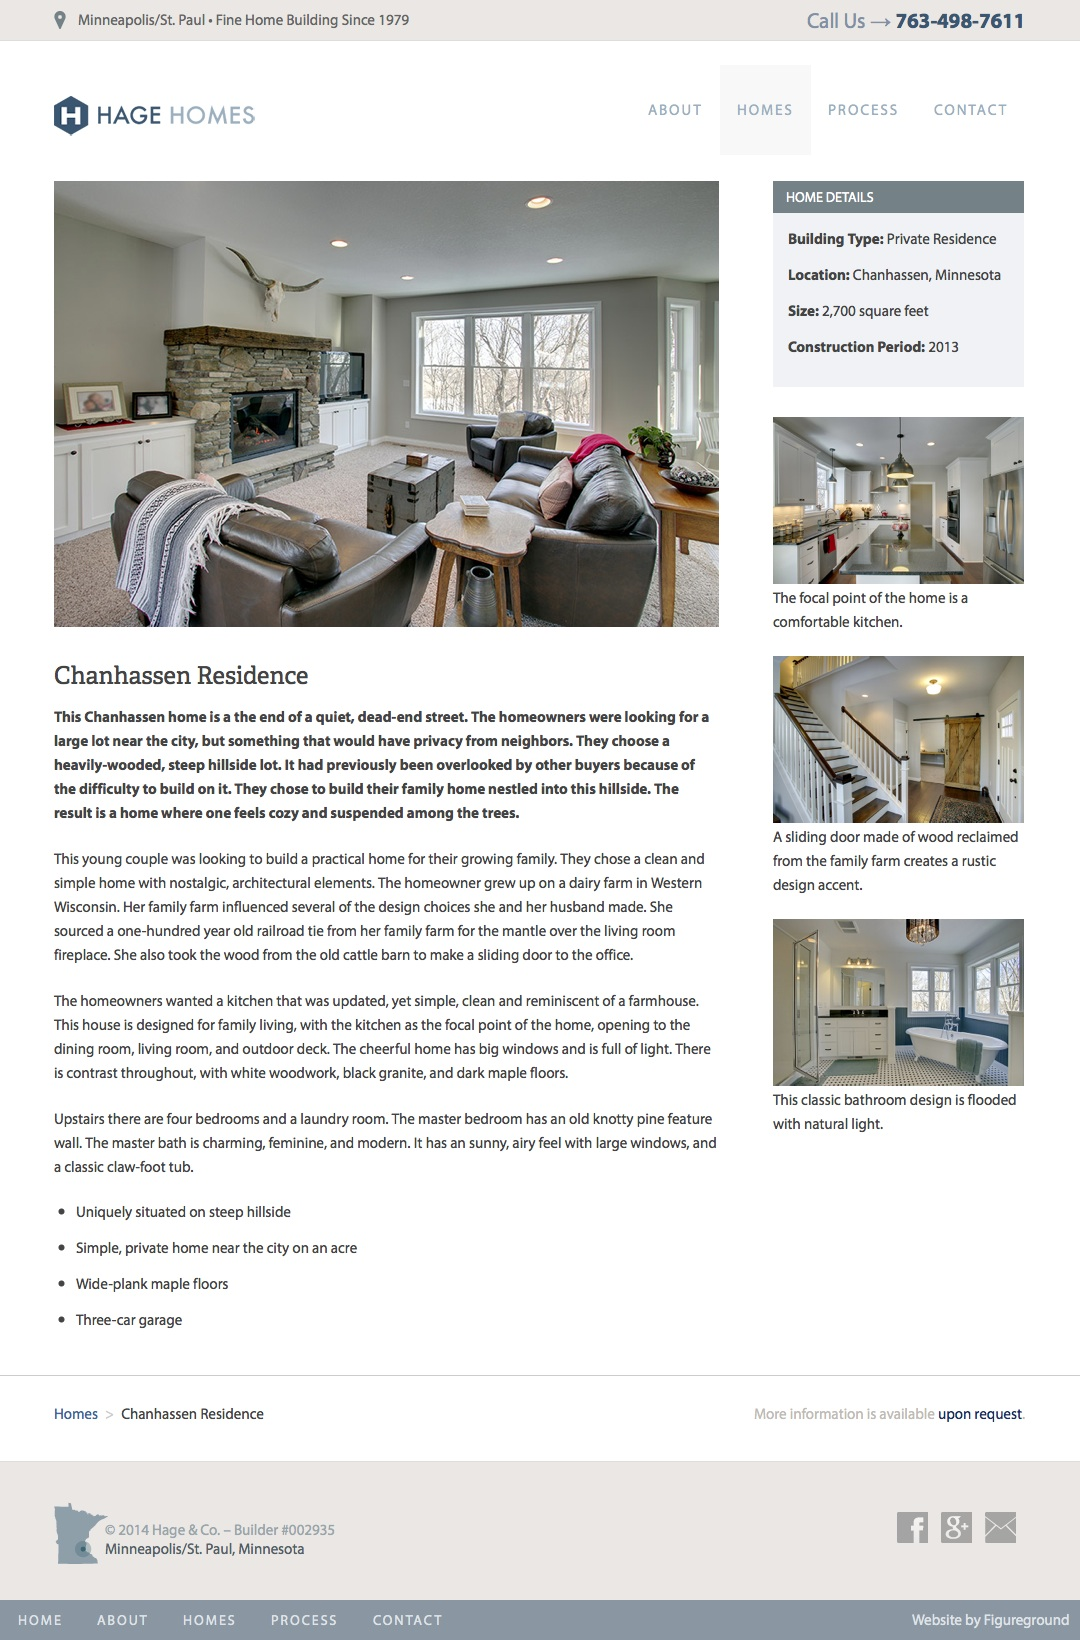 Hage Homebuilders Web Design